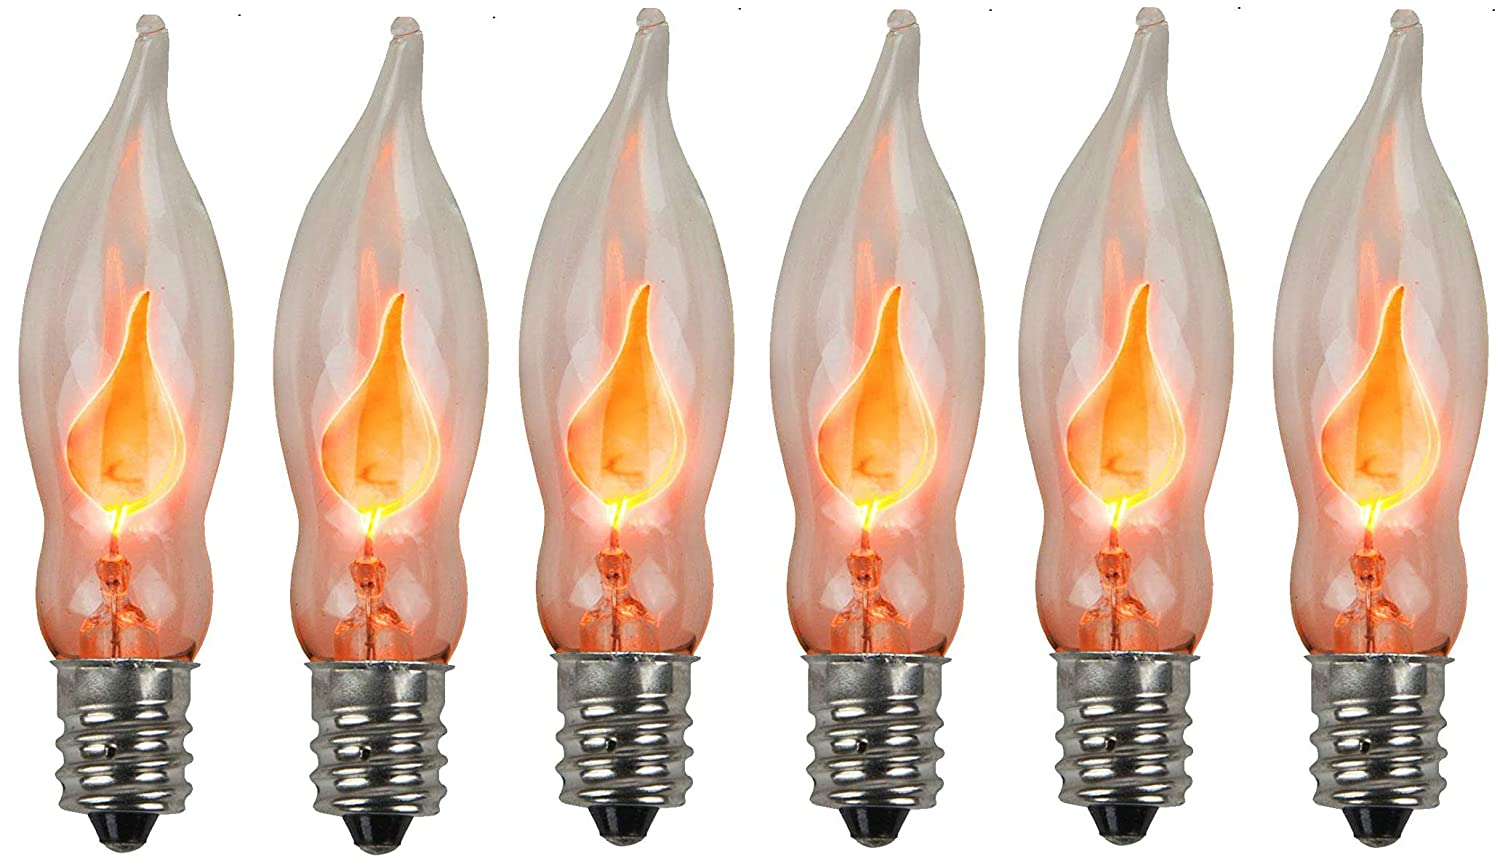 Holiday Joy - Flicker Flame Crystal Clear Flame Tip Candelabra Replacement Bulbs - Great for Electric Window Candle Lamps - CA5 - E12-1 Watt - 120 Volts (6 Pack)